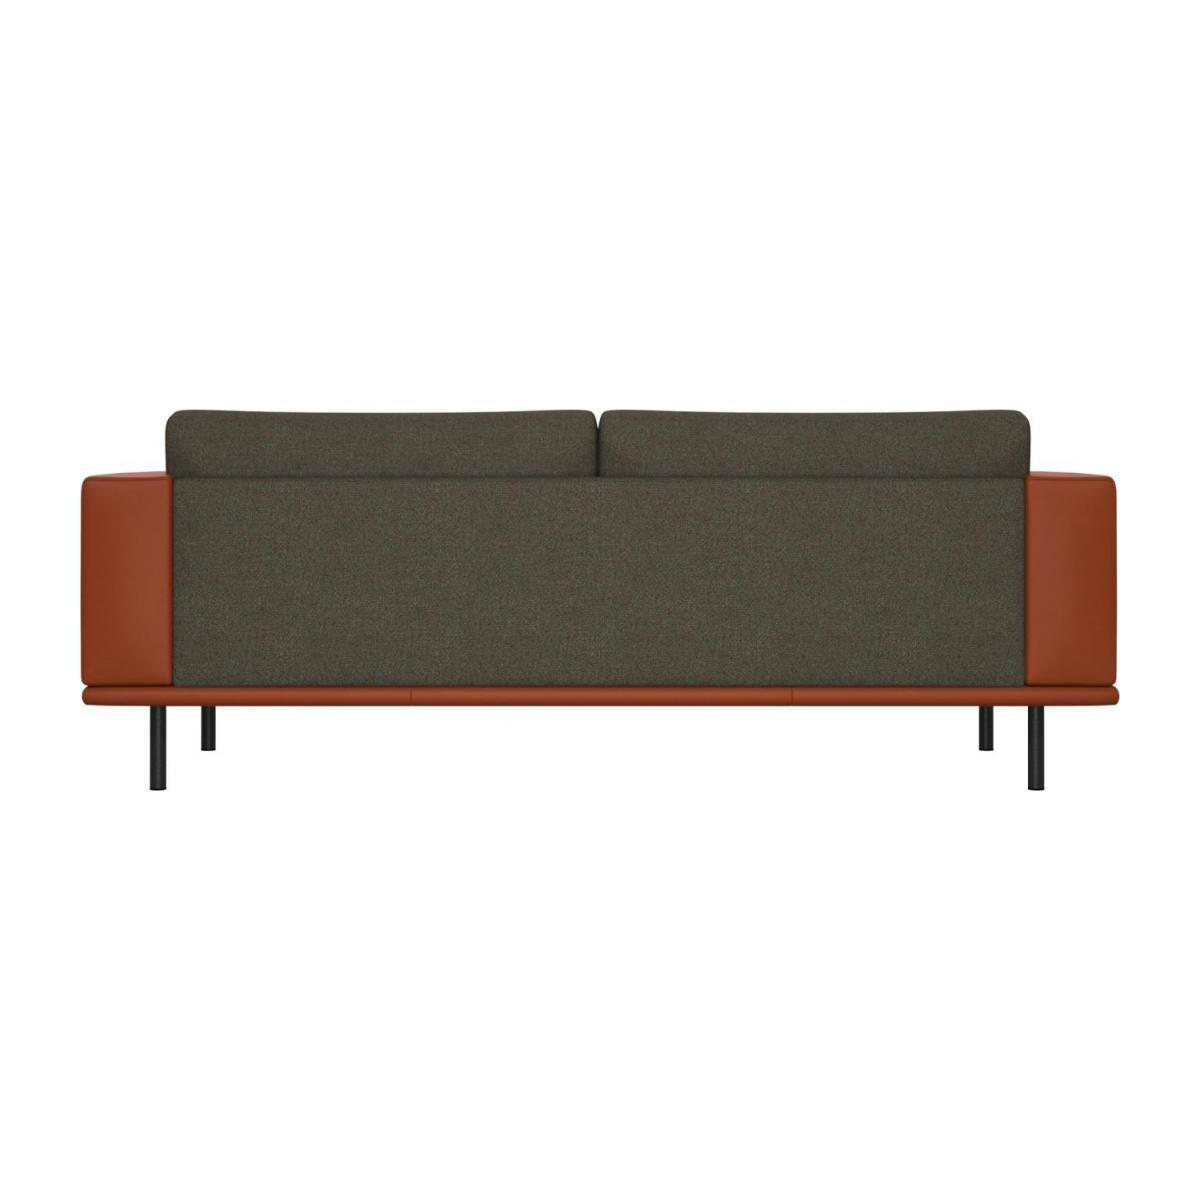 3 seater sofa in Lecce fabric, slade grey with base and armrests in brown leather n°3